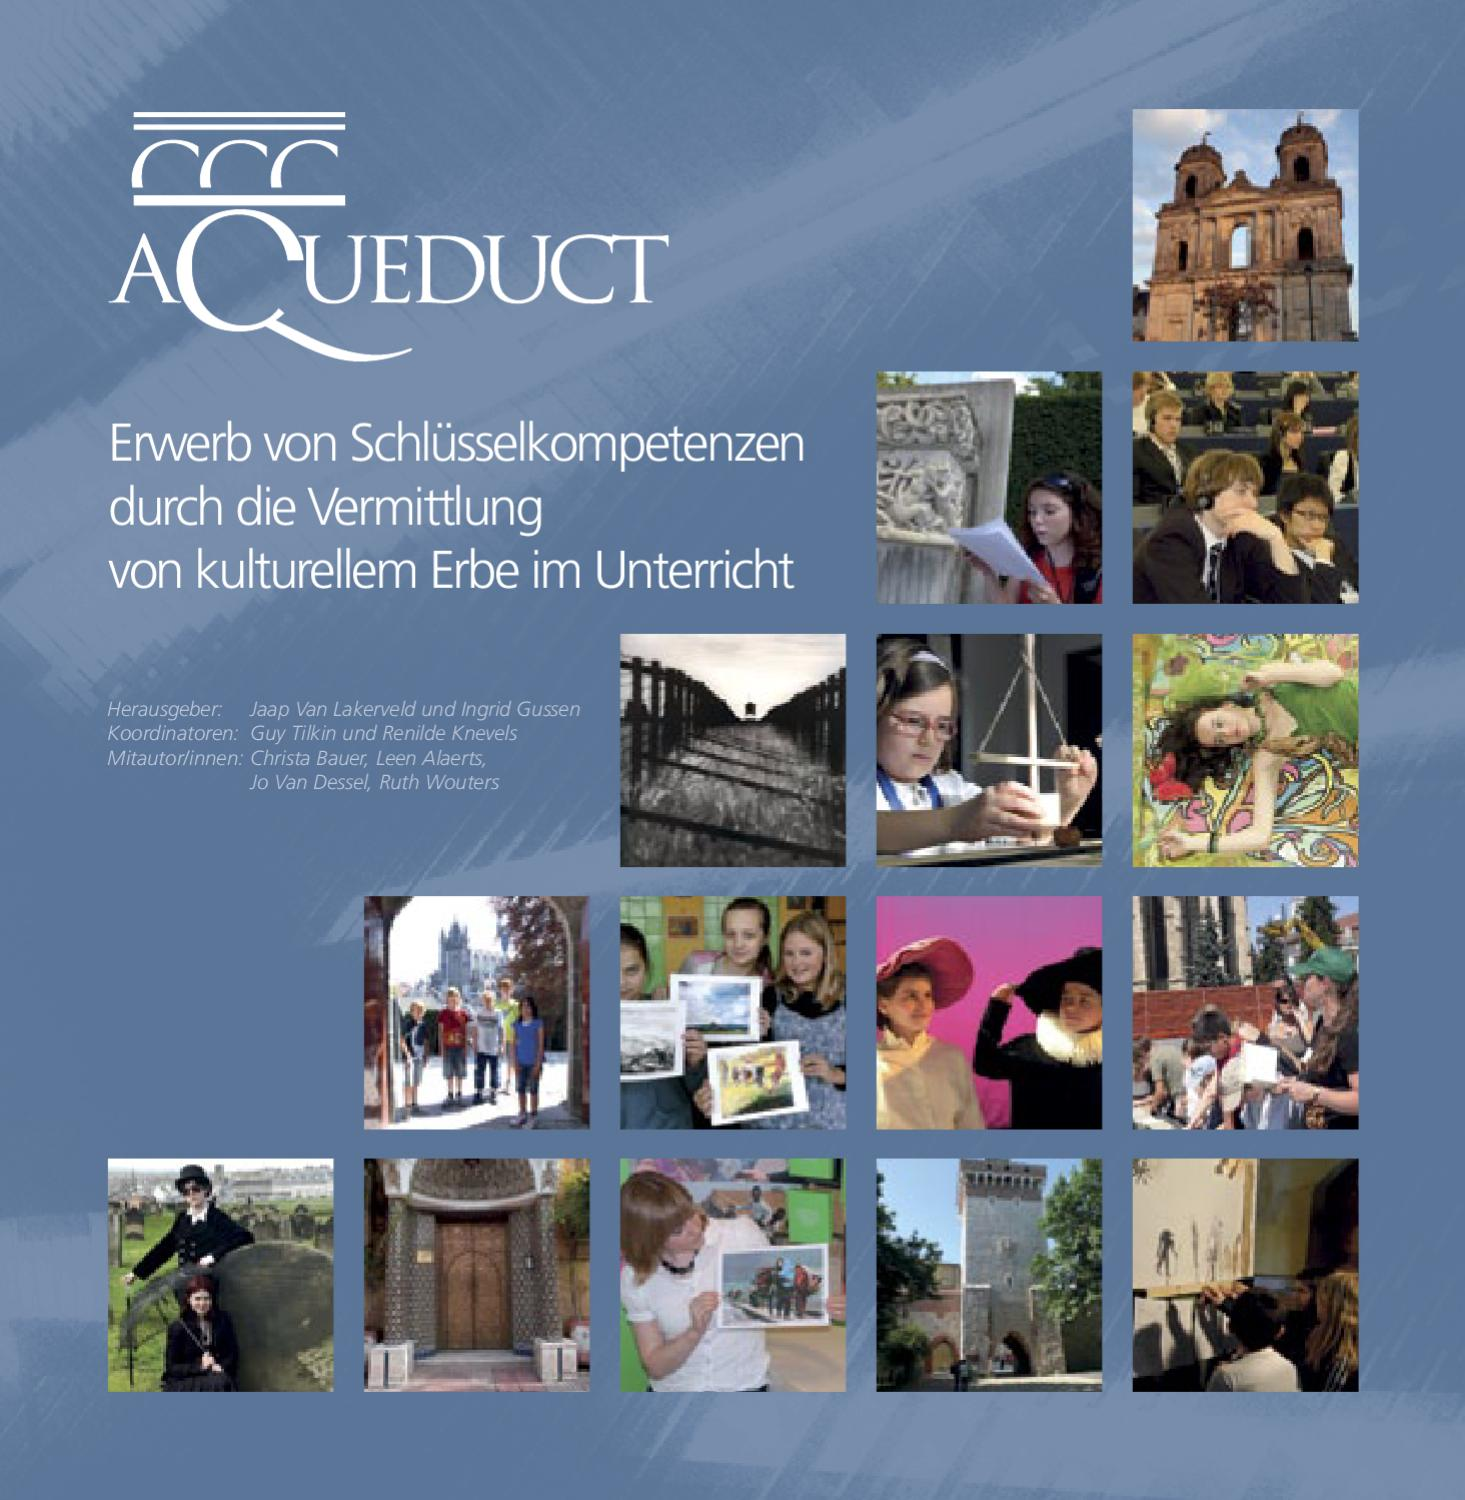 Aqueduct Manual Germany by Guy Tilkin - issuu